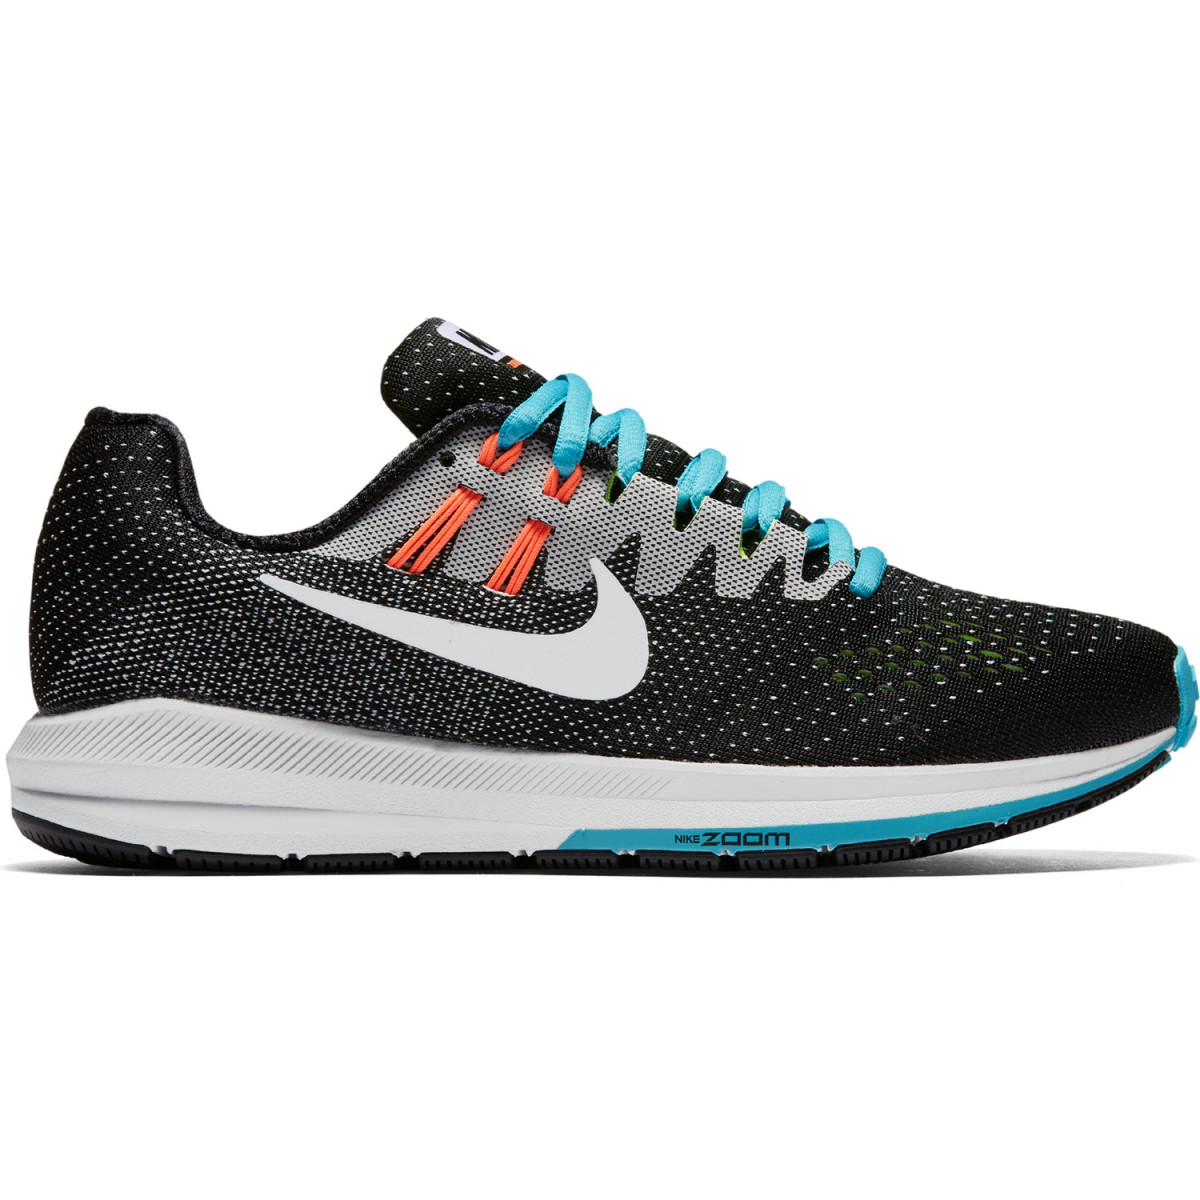 Zapatillas Nike Wmns Air Zoom Structure 20